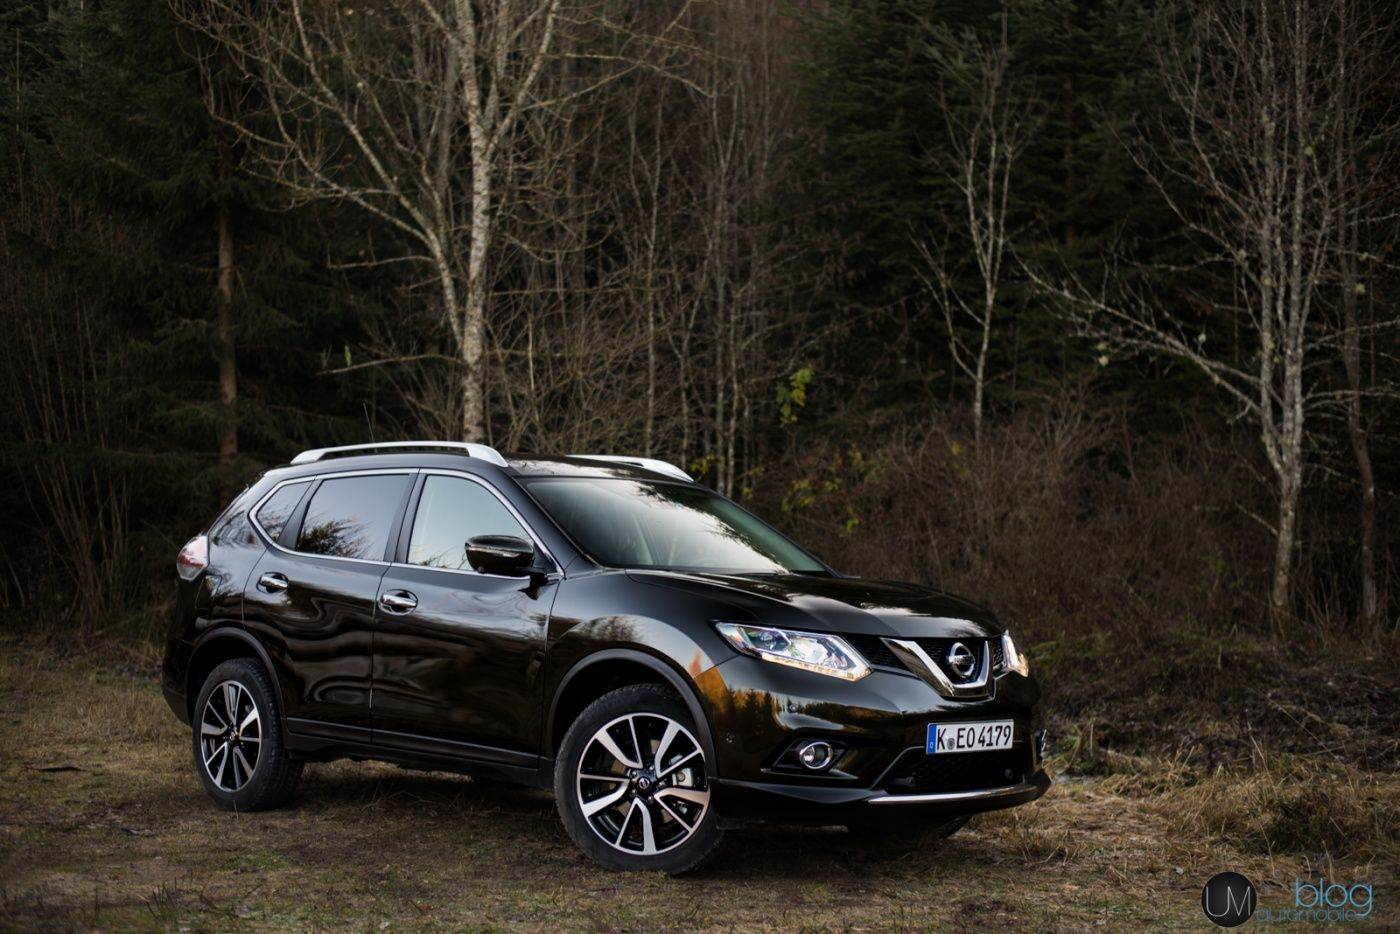 Experience Nissan XTrail 2.0 dci 173ch in the mud New